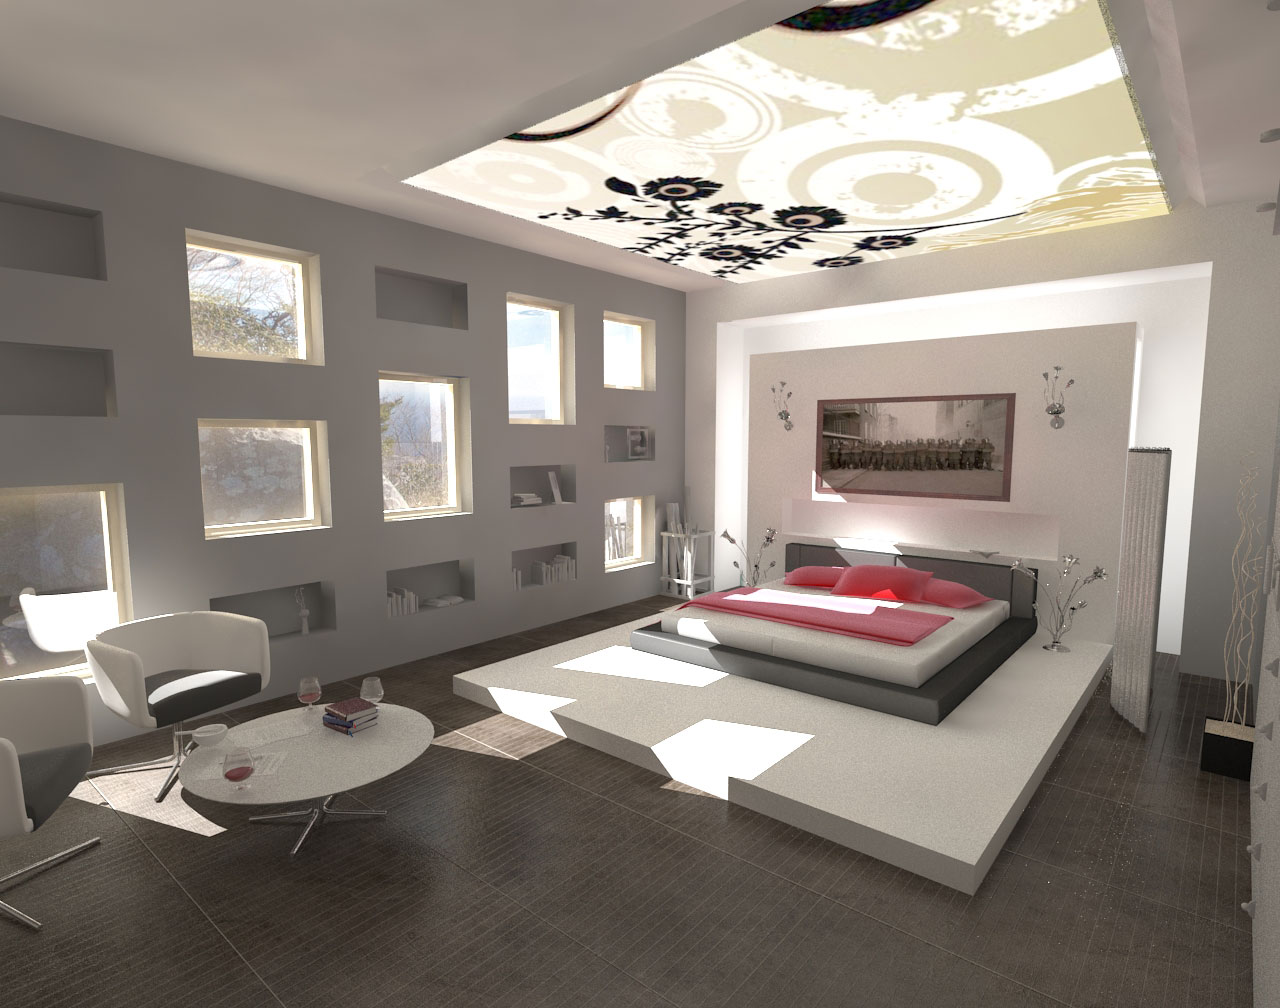 Modern bedroom design ideas photograph decorations minima - Design of bedroom ...